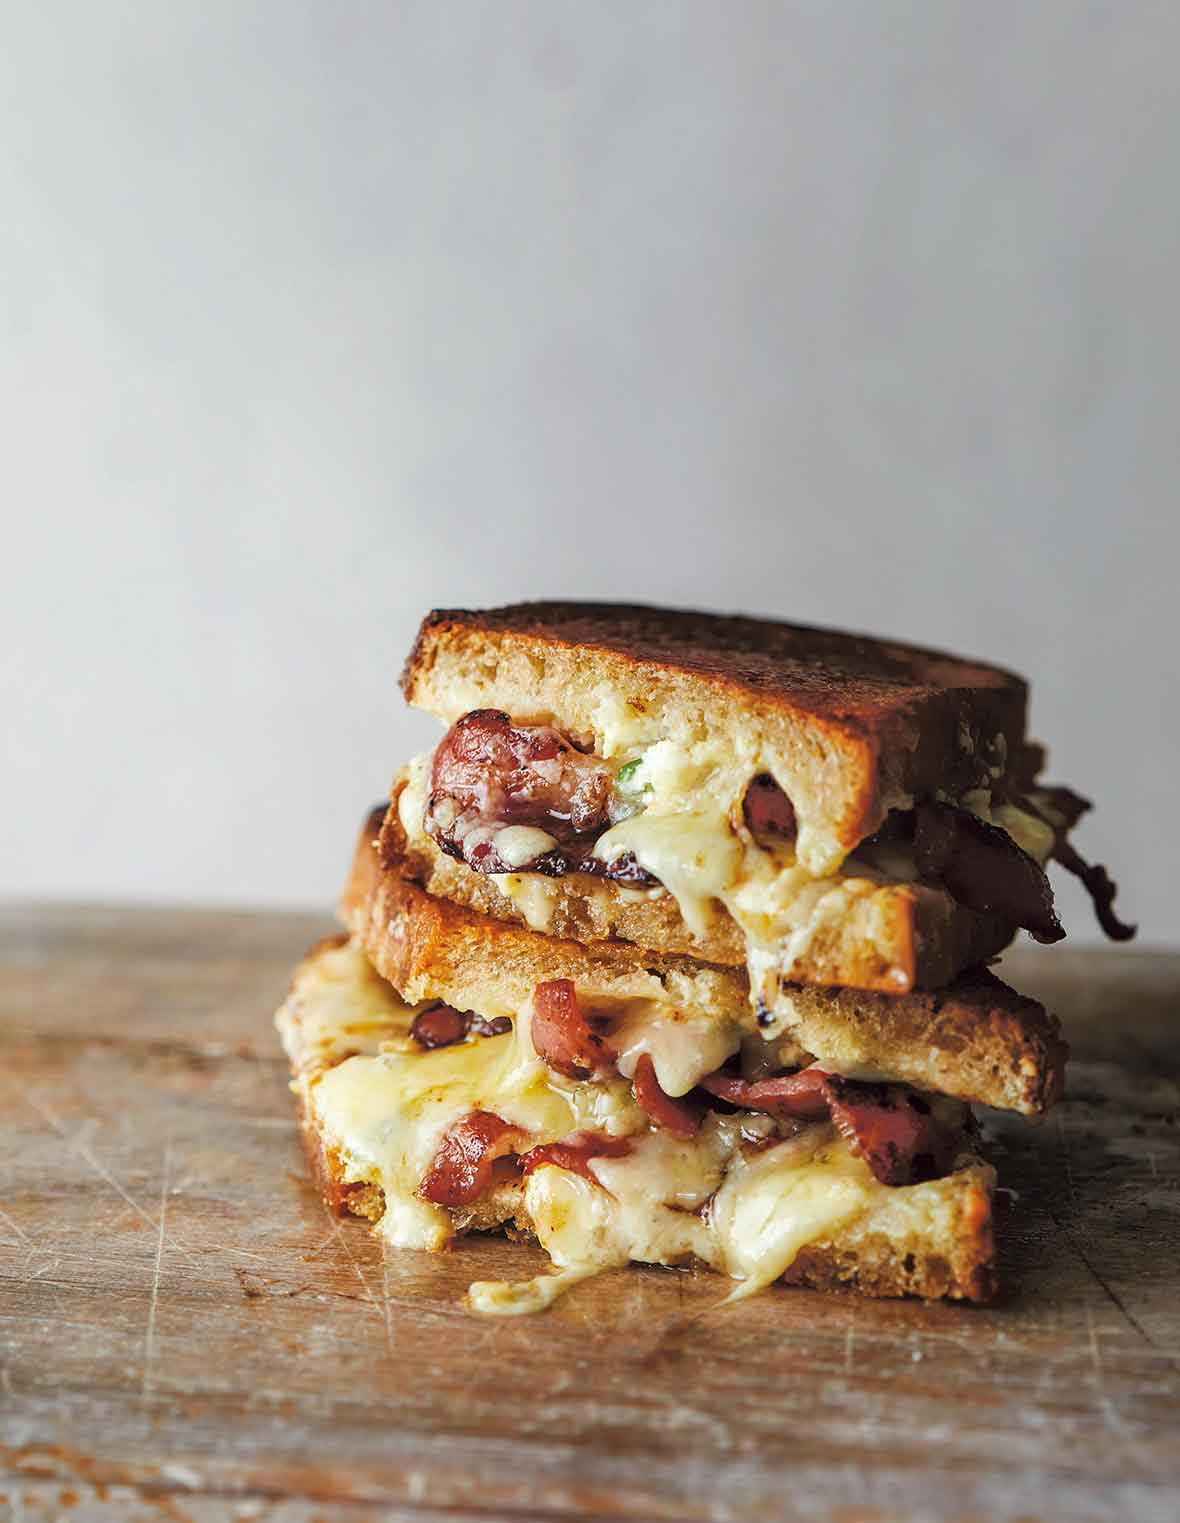 Two halves of grilled cheddar jalapeno popper sandwich stacked on top of each other